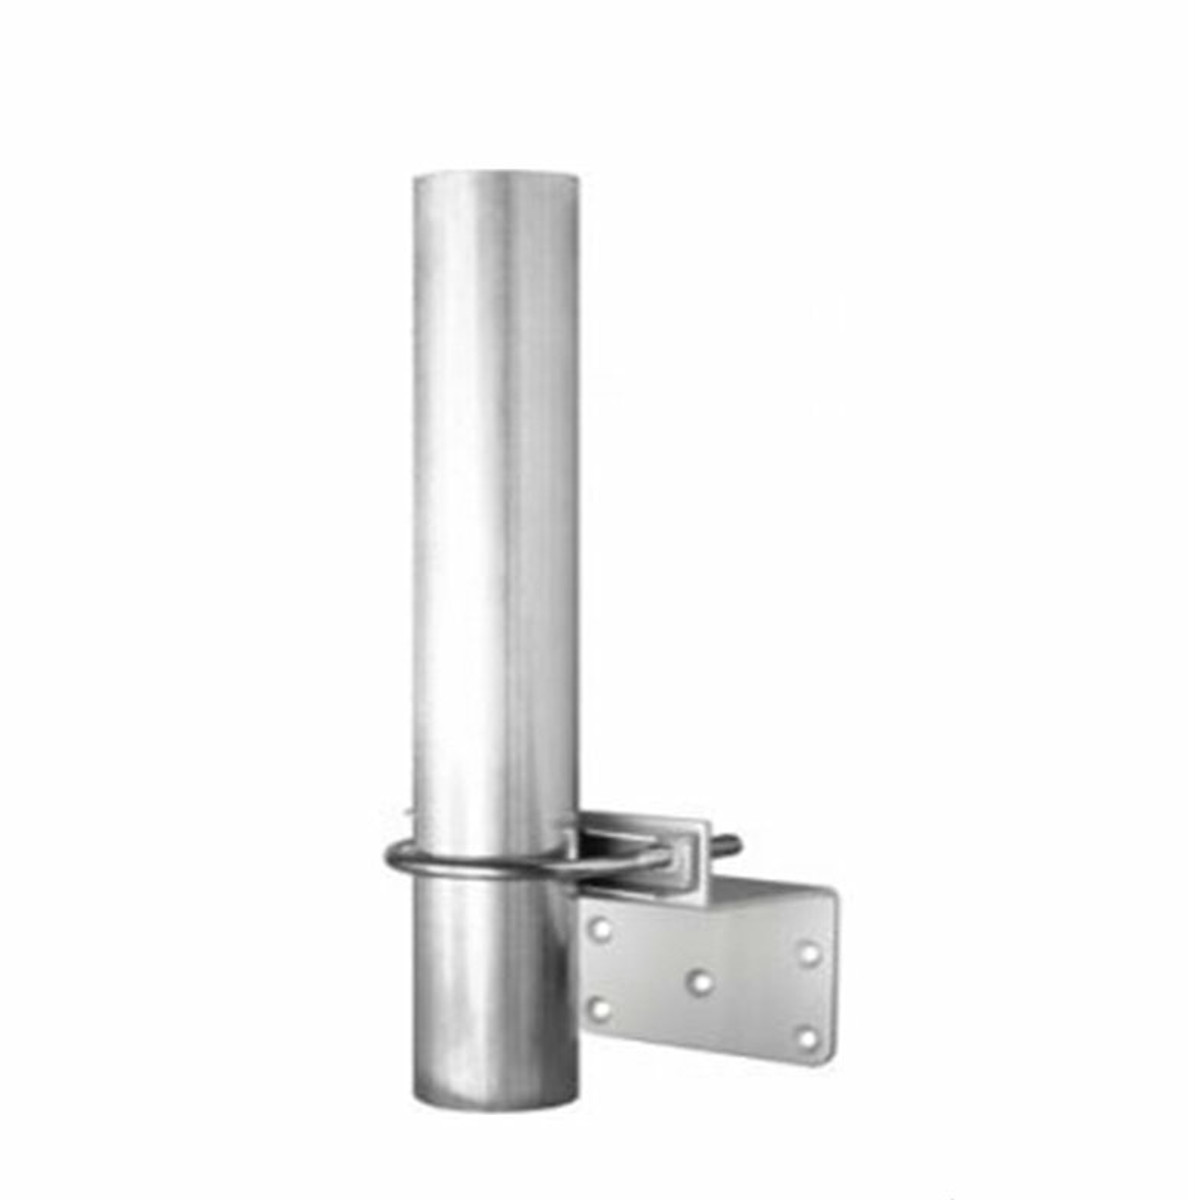 weBoost (Wilson) 901117 Pole Mounting Assembly for Outdoor Antennas